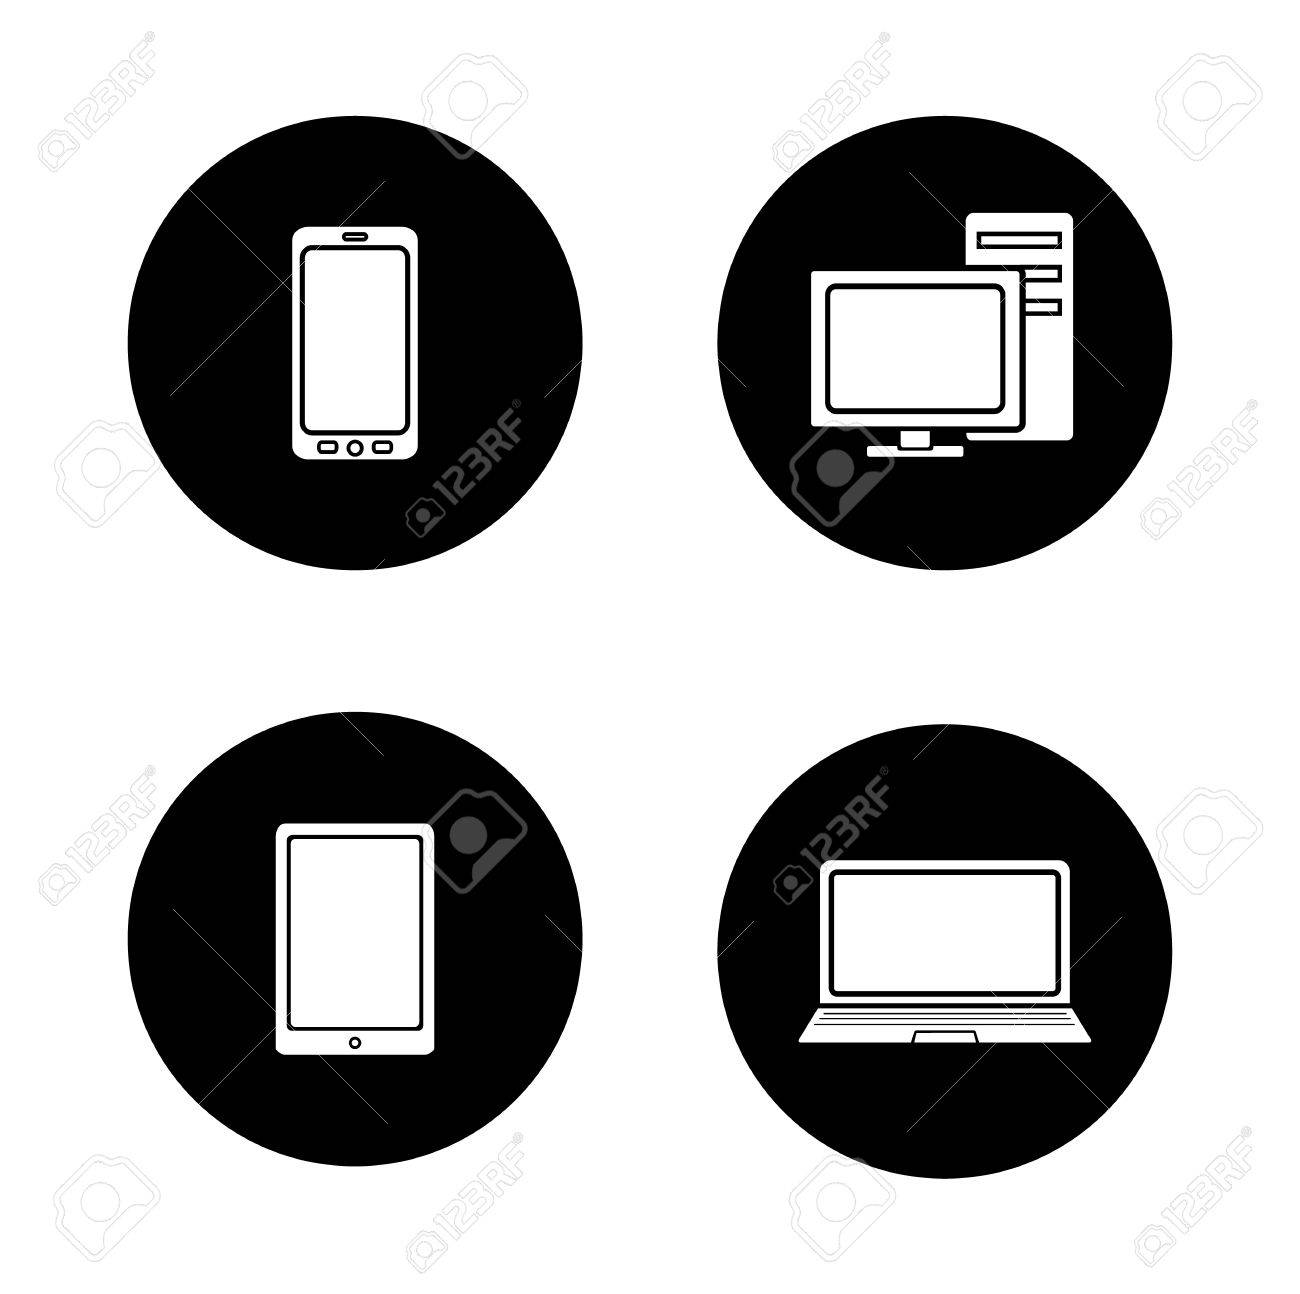 Image result for consumer electronics black and white